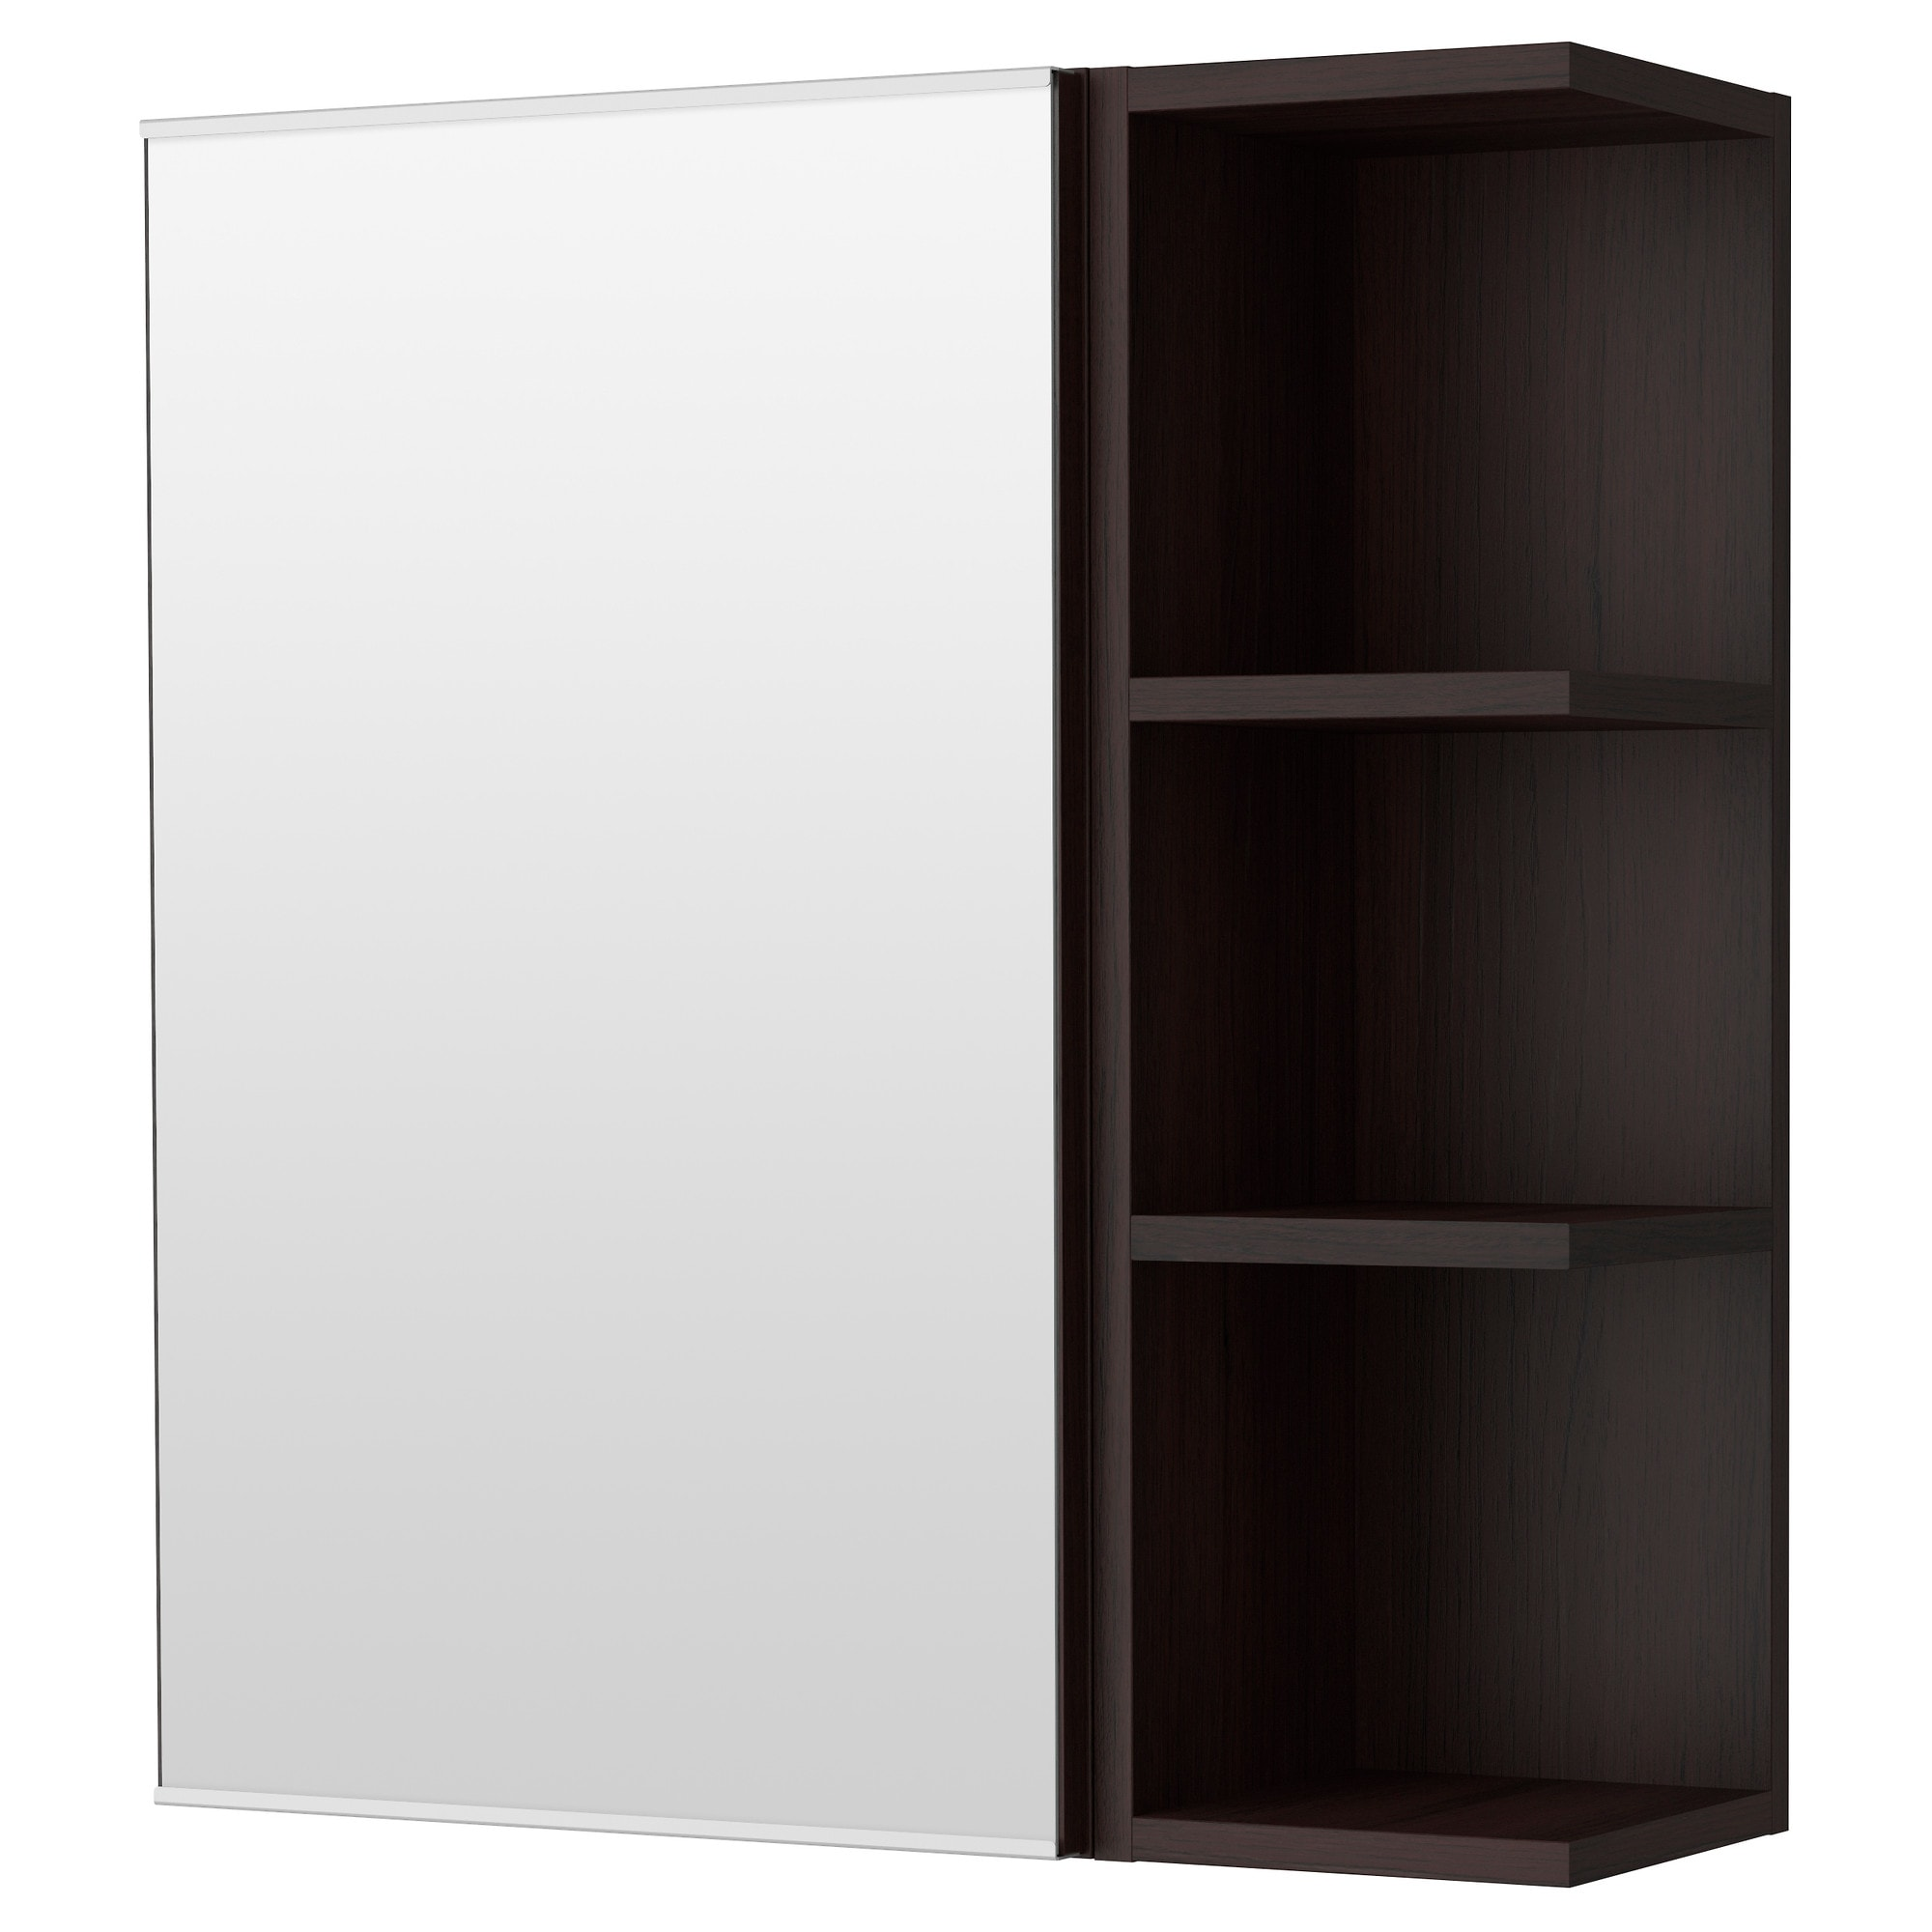 Bathroom mirror cabinets ikea - Lill Ngen Mirror Cabinet 1 Door 1 End Unit Black Brown 23 1 4x8 1 4x25 1 4 Ikea